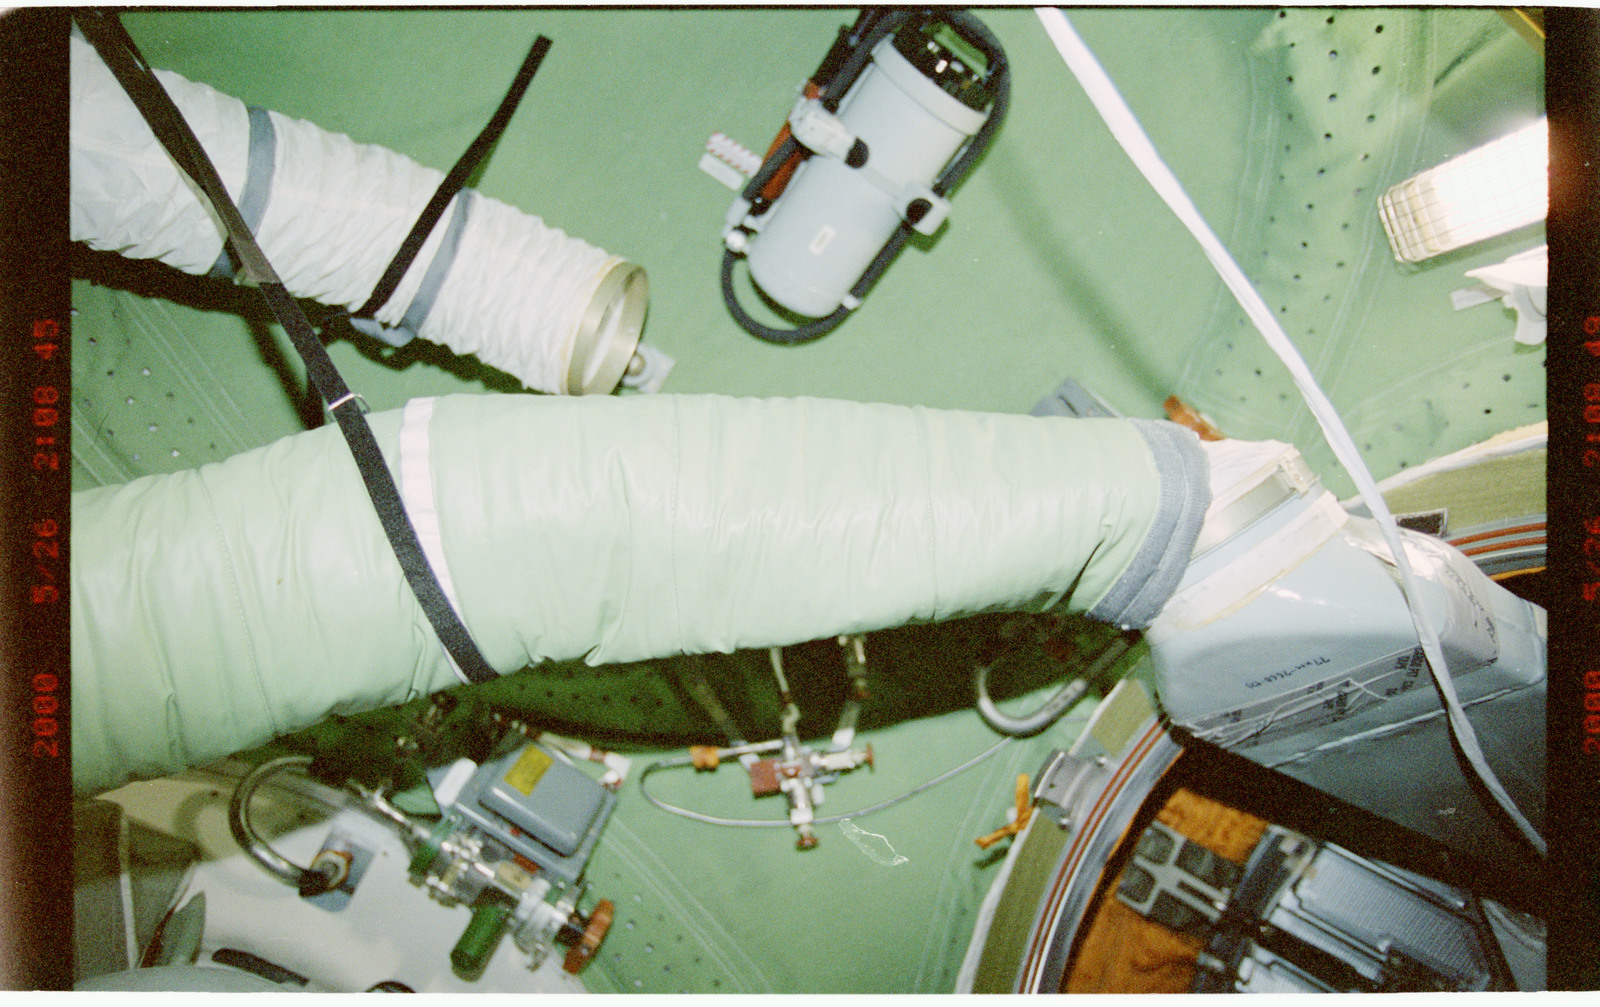 STS101-394-006 - STS-101 - View of ventilation hoses aboard the ISS